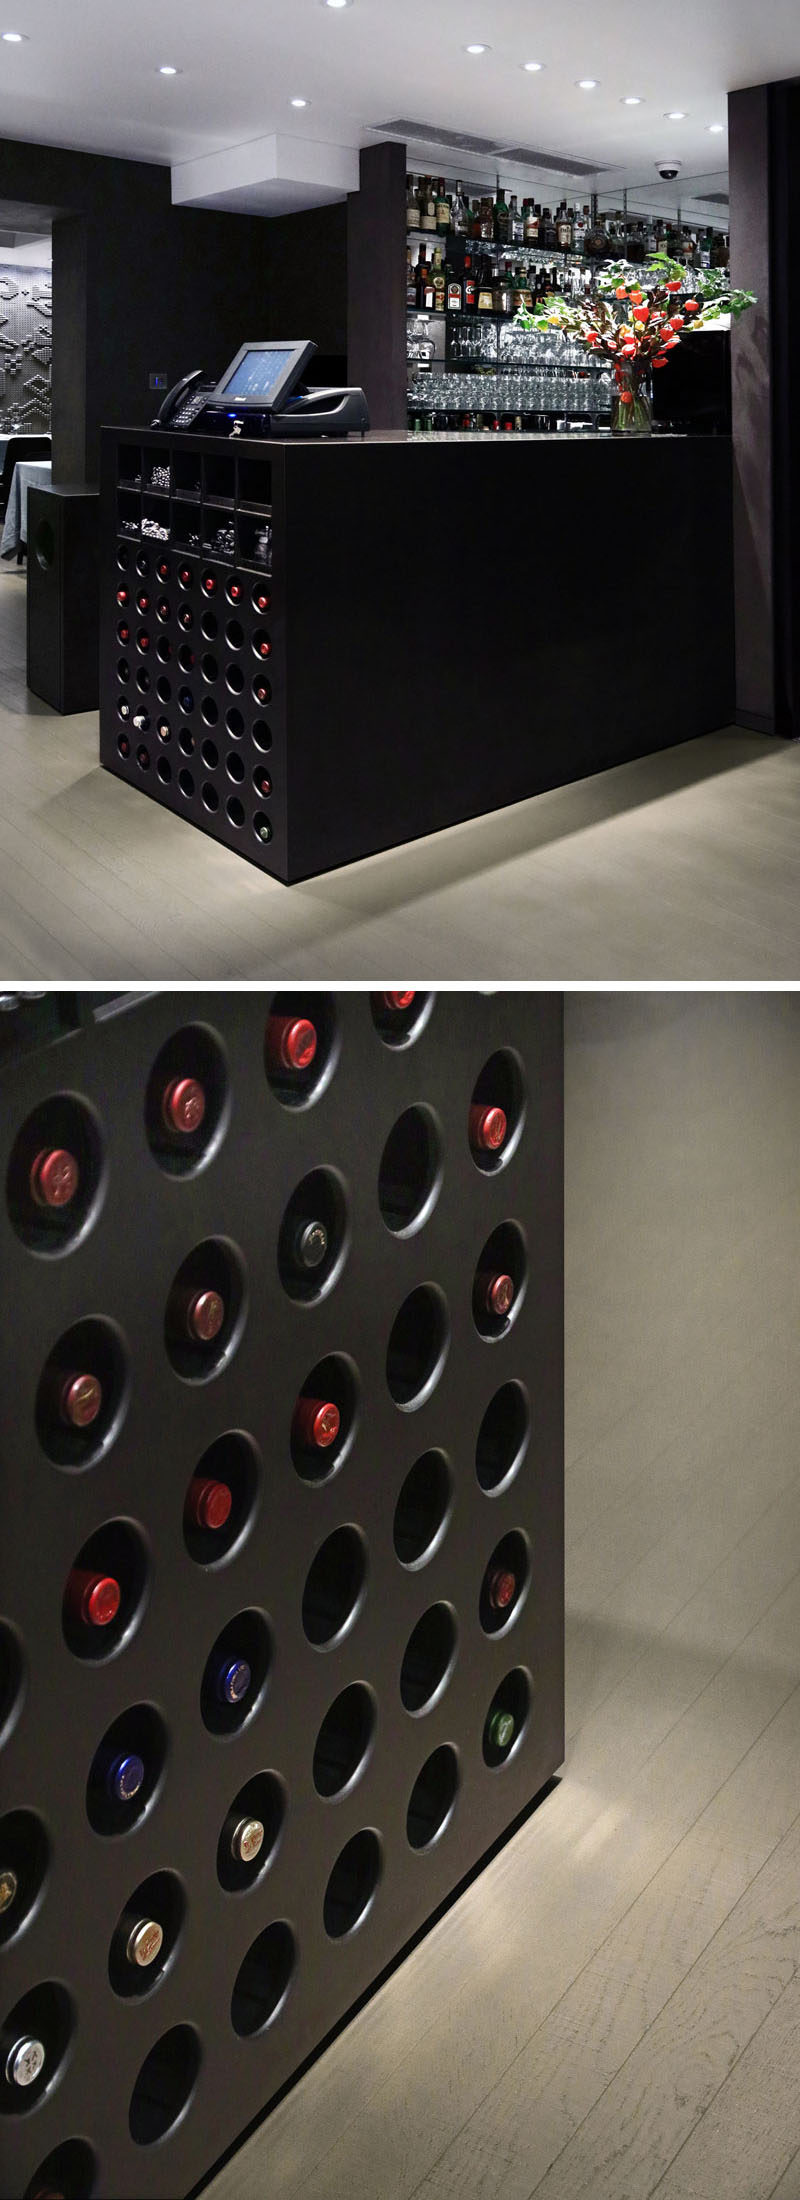 This bar and reception area in a London restaurant features a multi-functional counter made from Corian in a 'coffee-bean' brown. Beneath the counter is a wine display that houses the wine bottles flush with the edge of the counter.